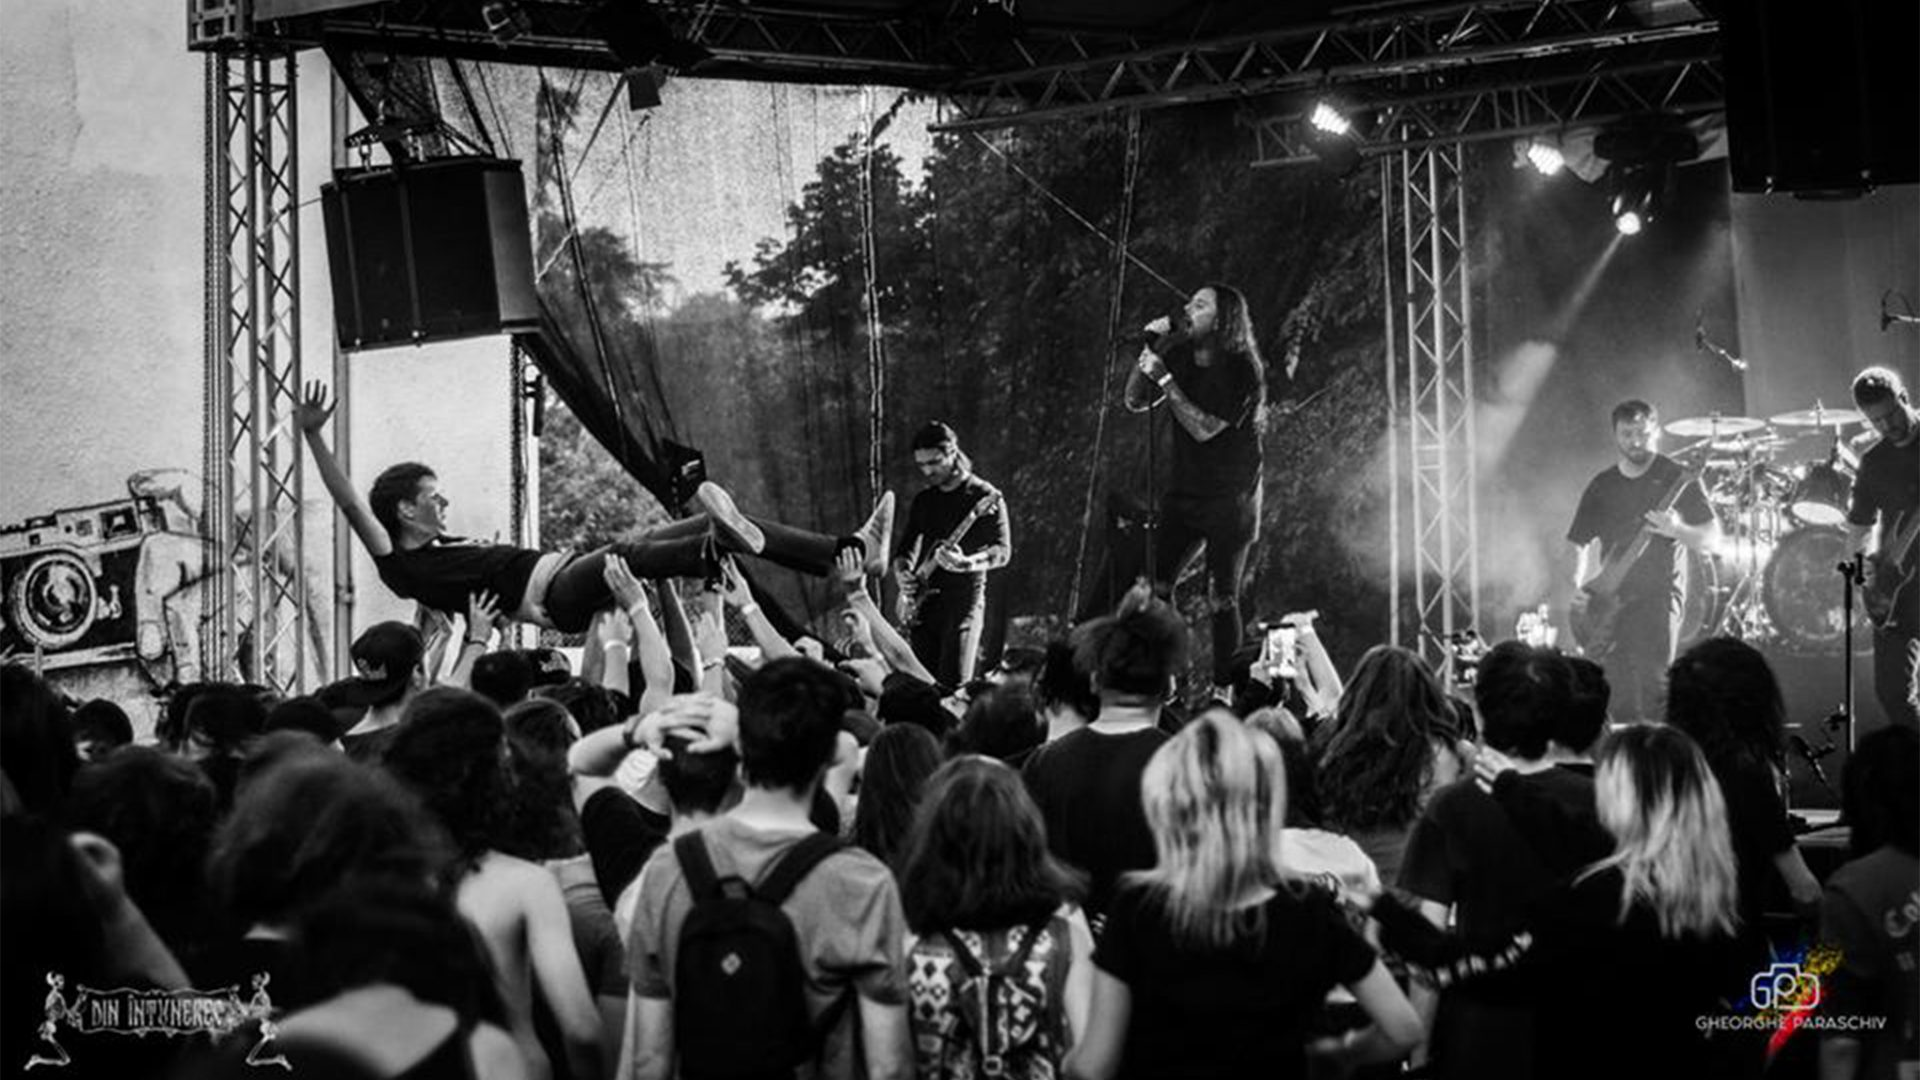 Thy Art Is Murder Local Support At Quantic Open Air